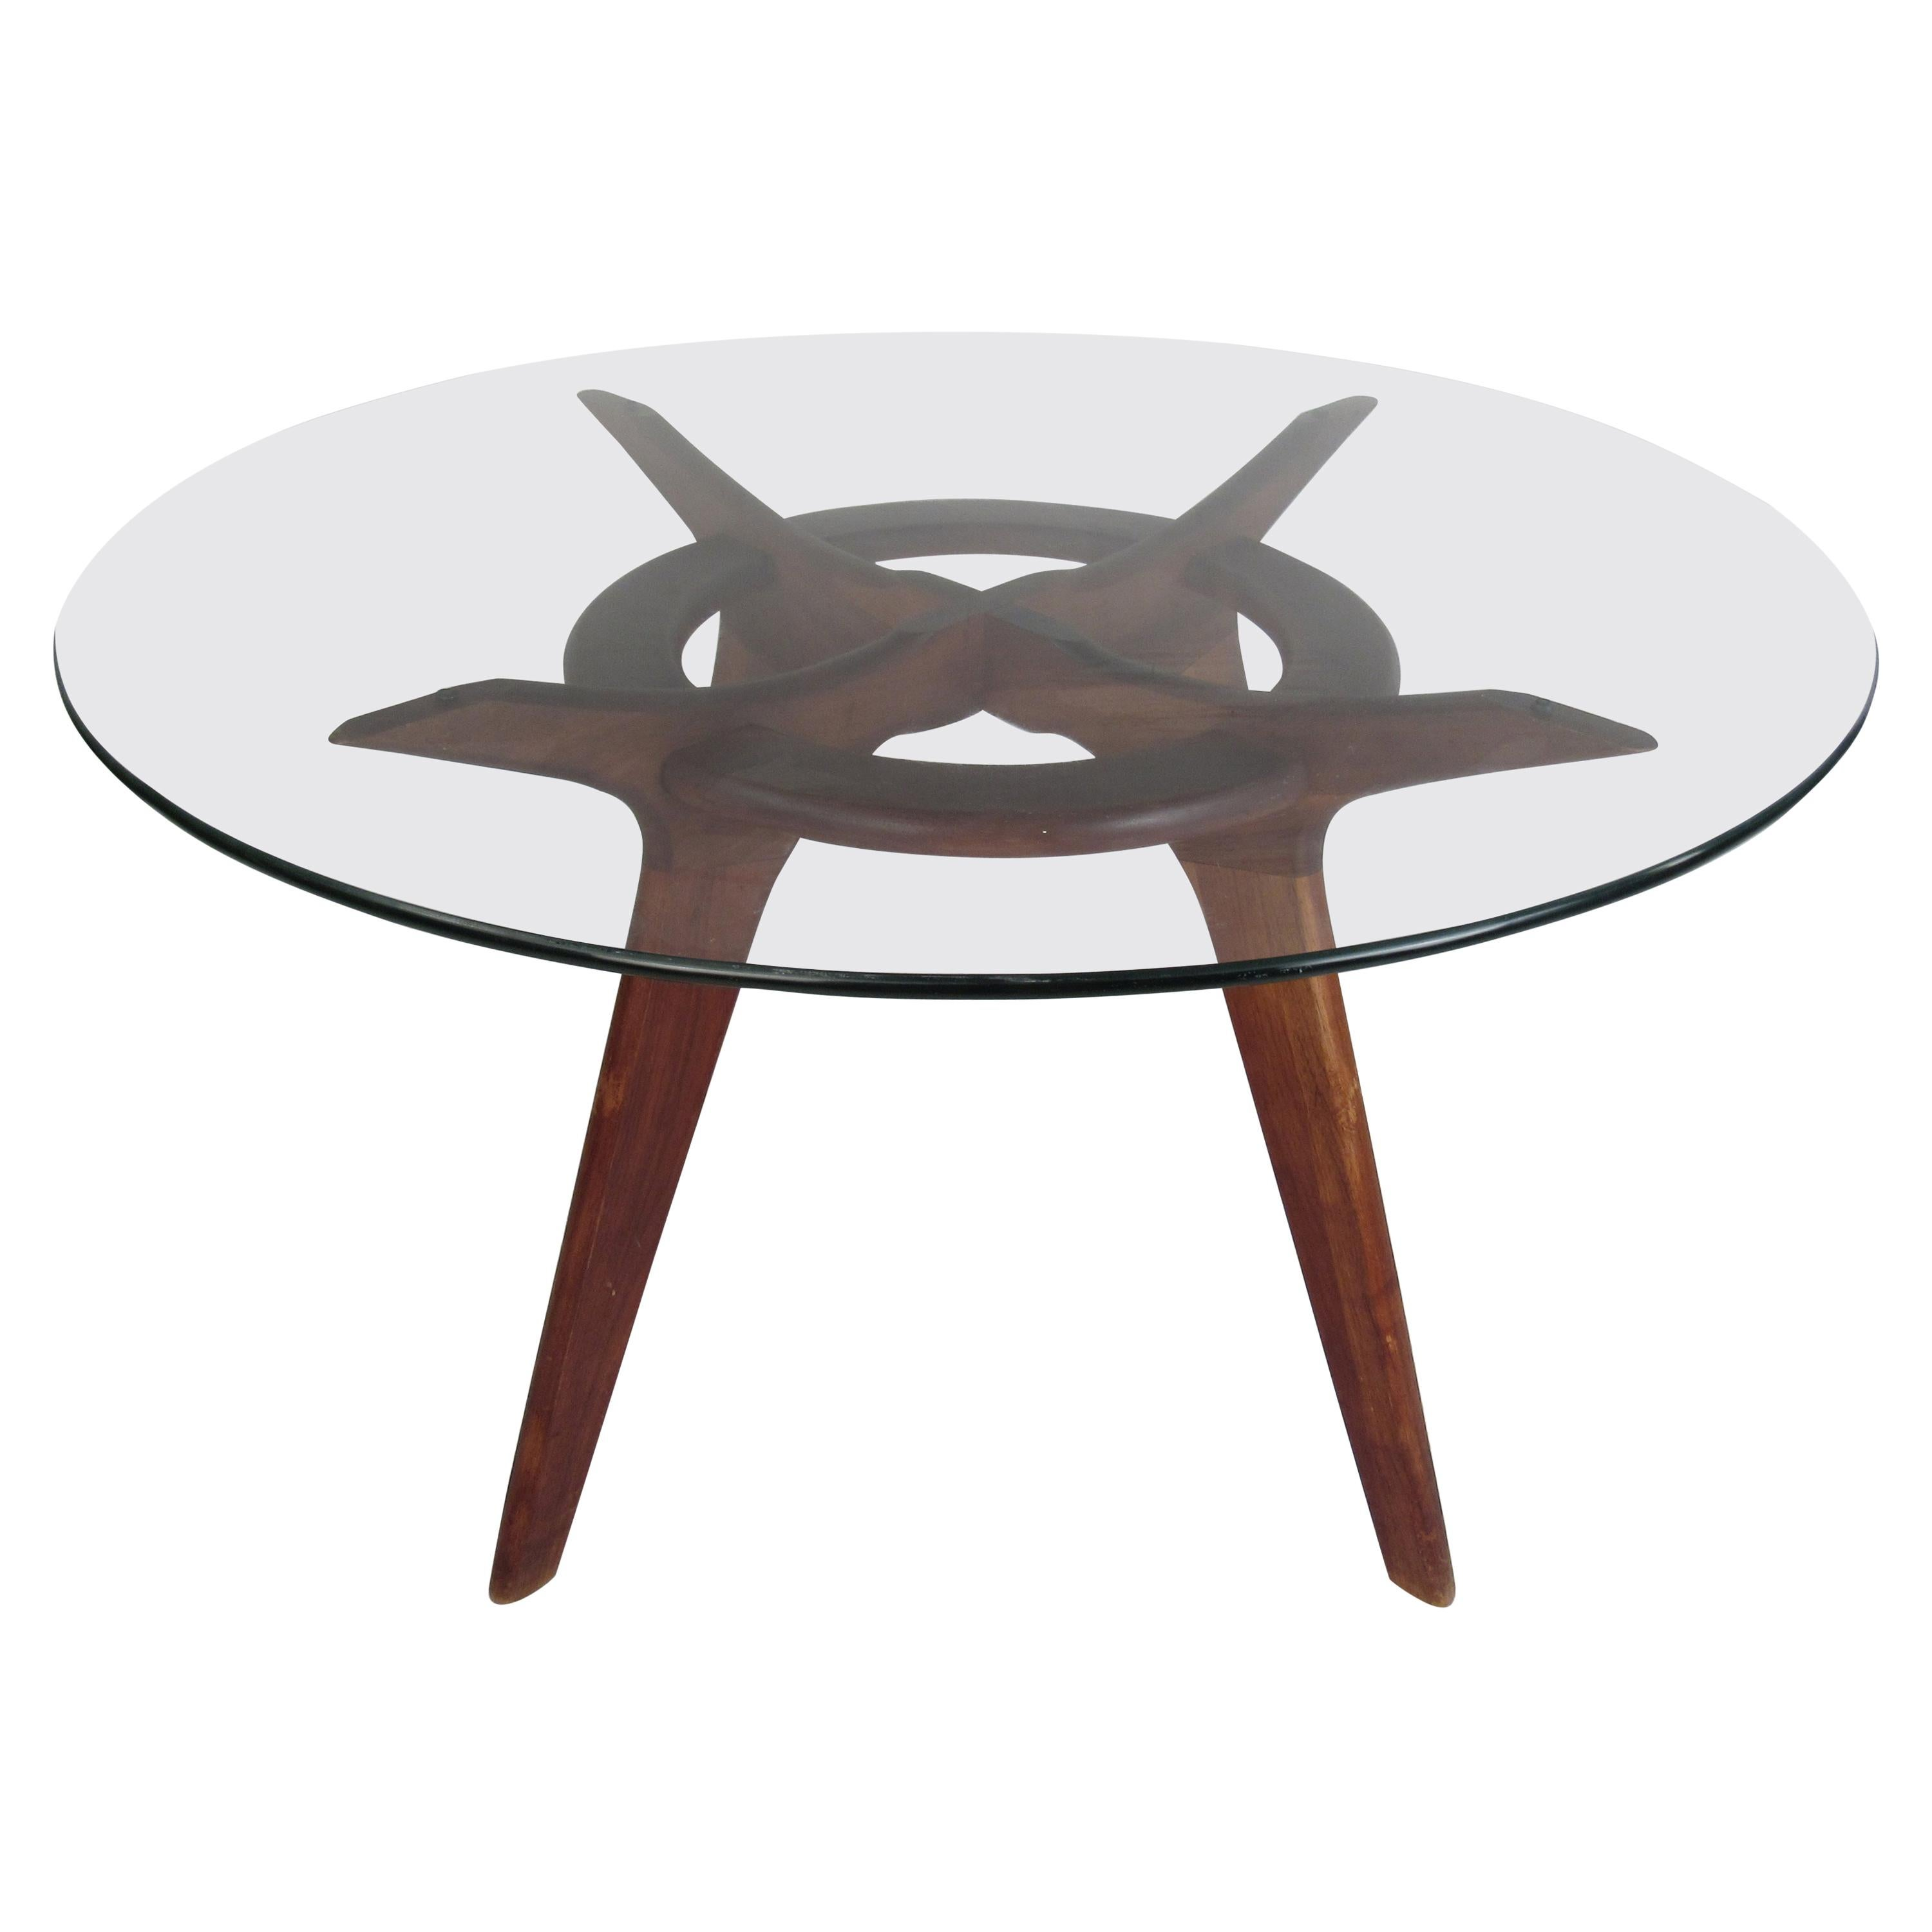 Midcentury Adrian Pearsall Compass Dining Table